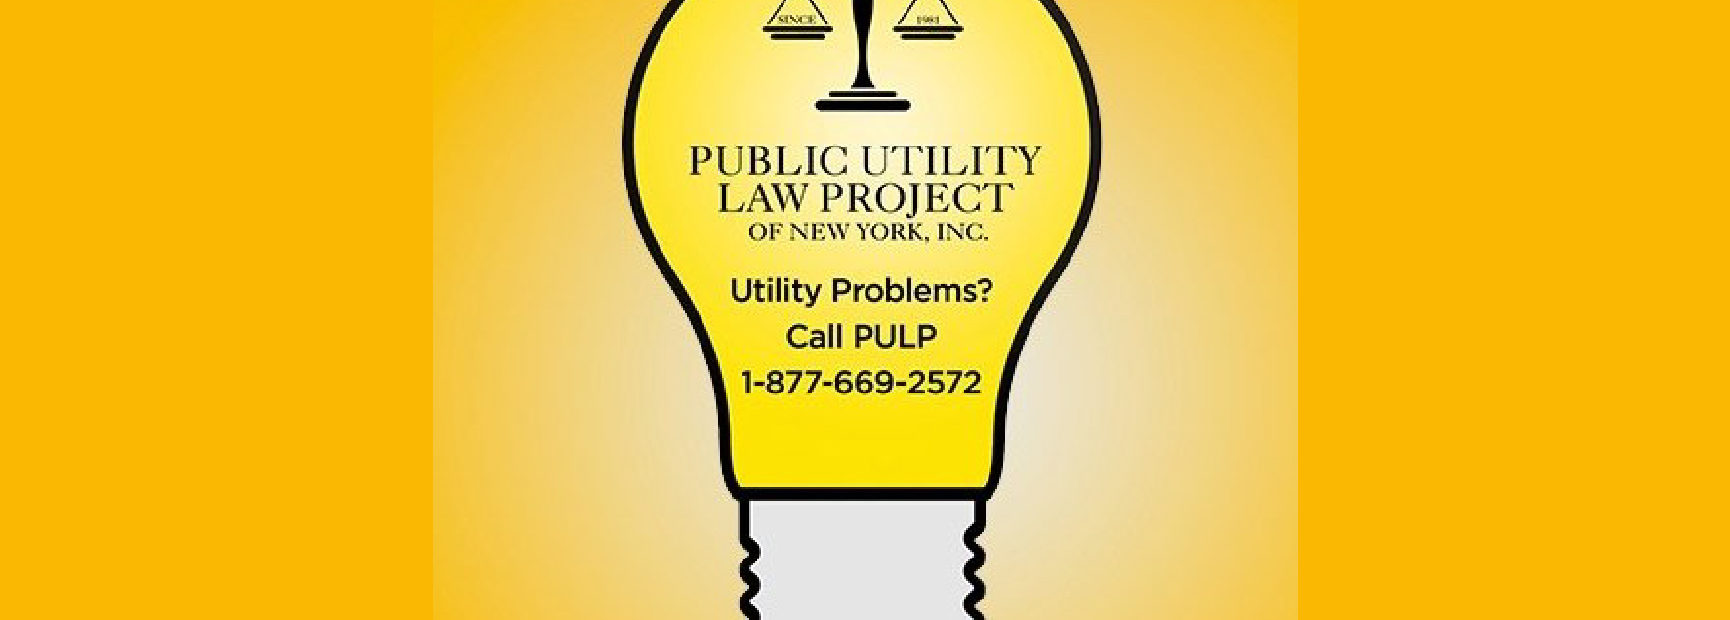 Public Utility Law Project of New York